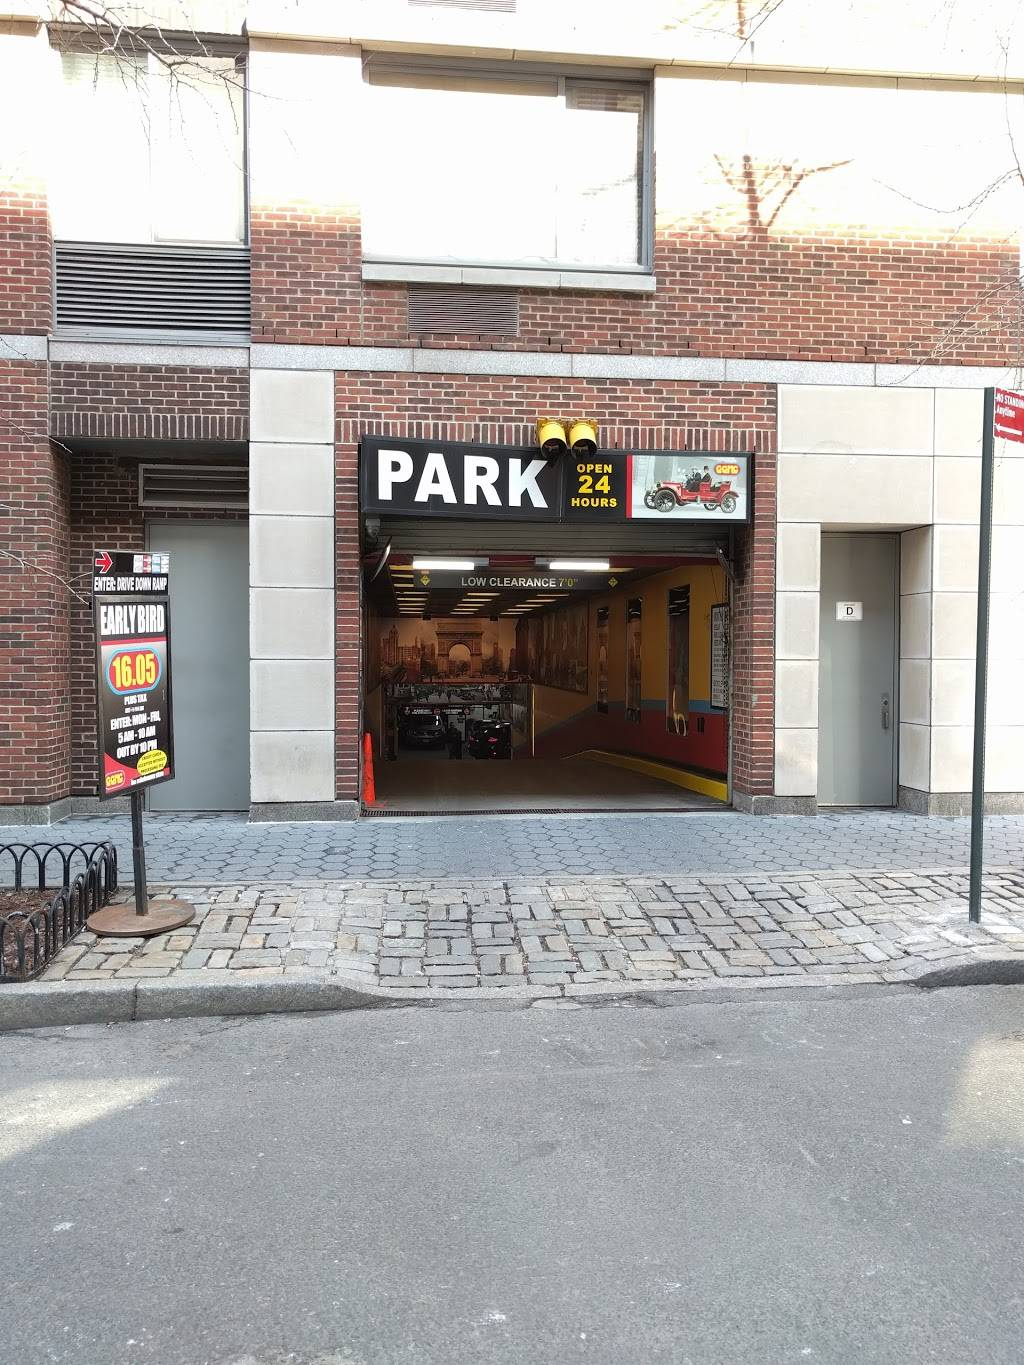 Cove Club - parking  | Photo 1 of 7 | Address: 2 South End Ave, New York, NY 10280, USA | Phone: (212) 786-0666